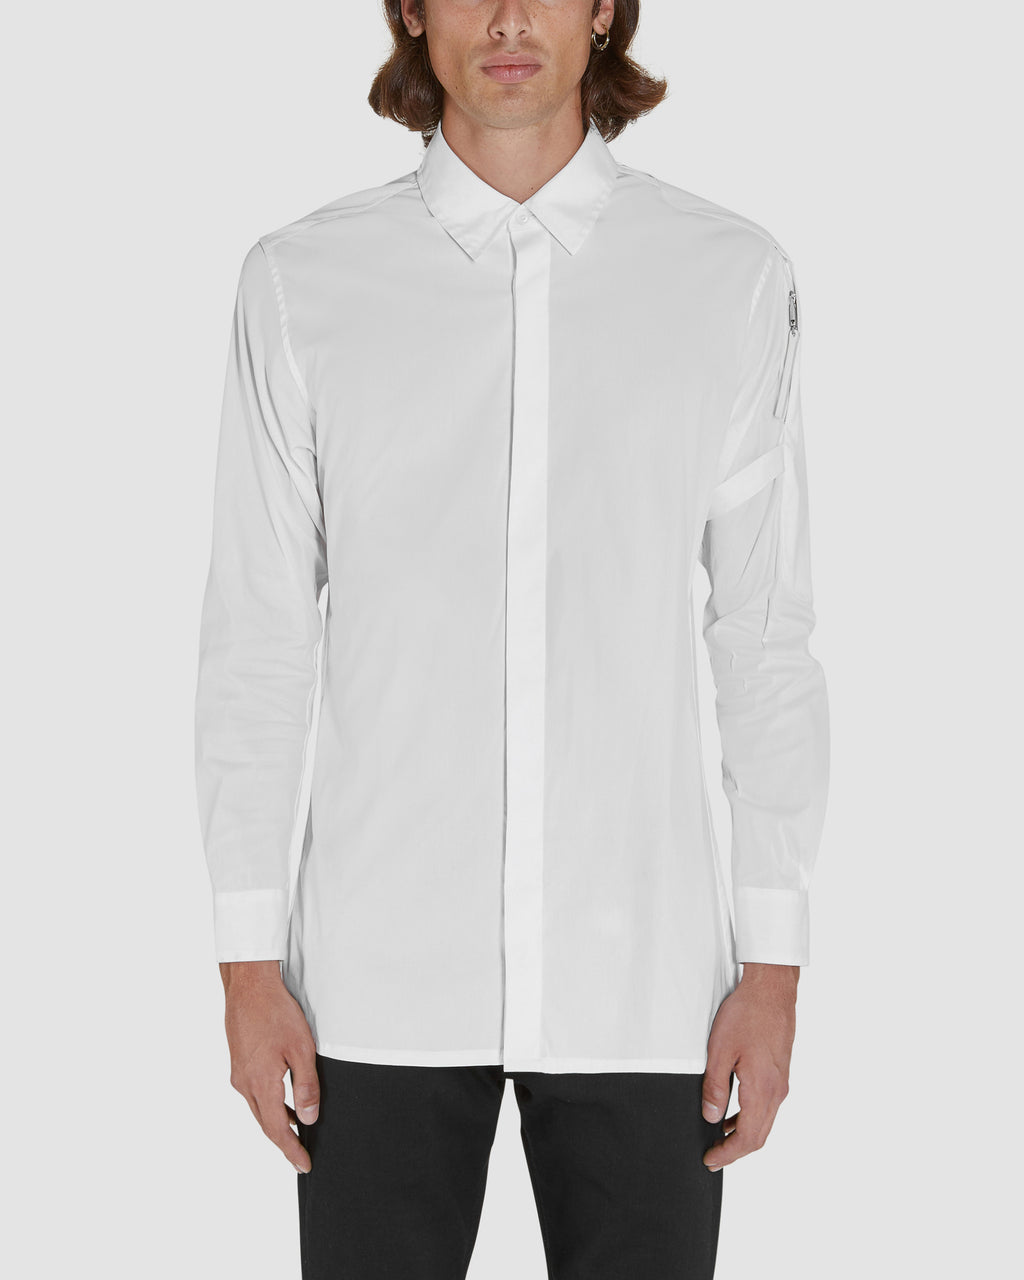 SLING BUTTON UP